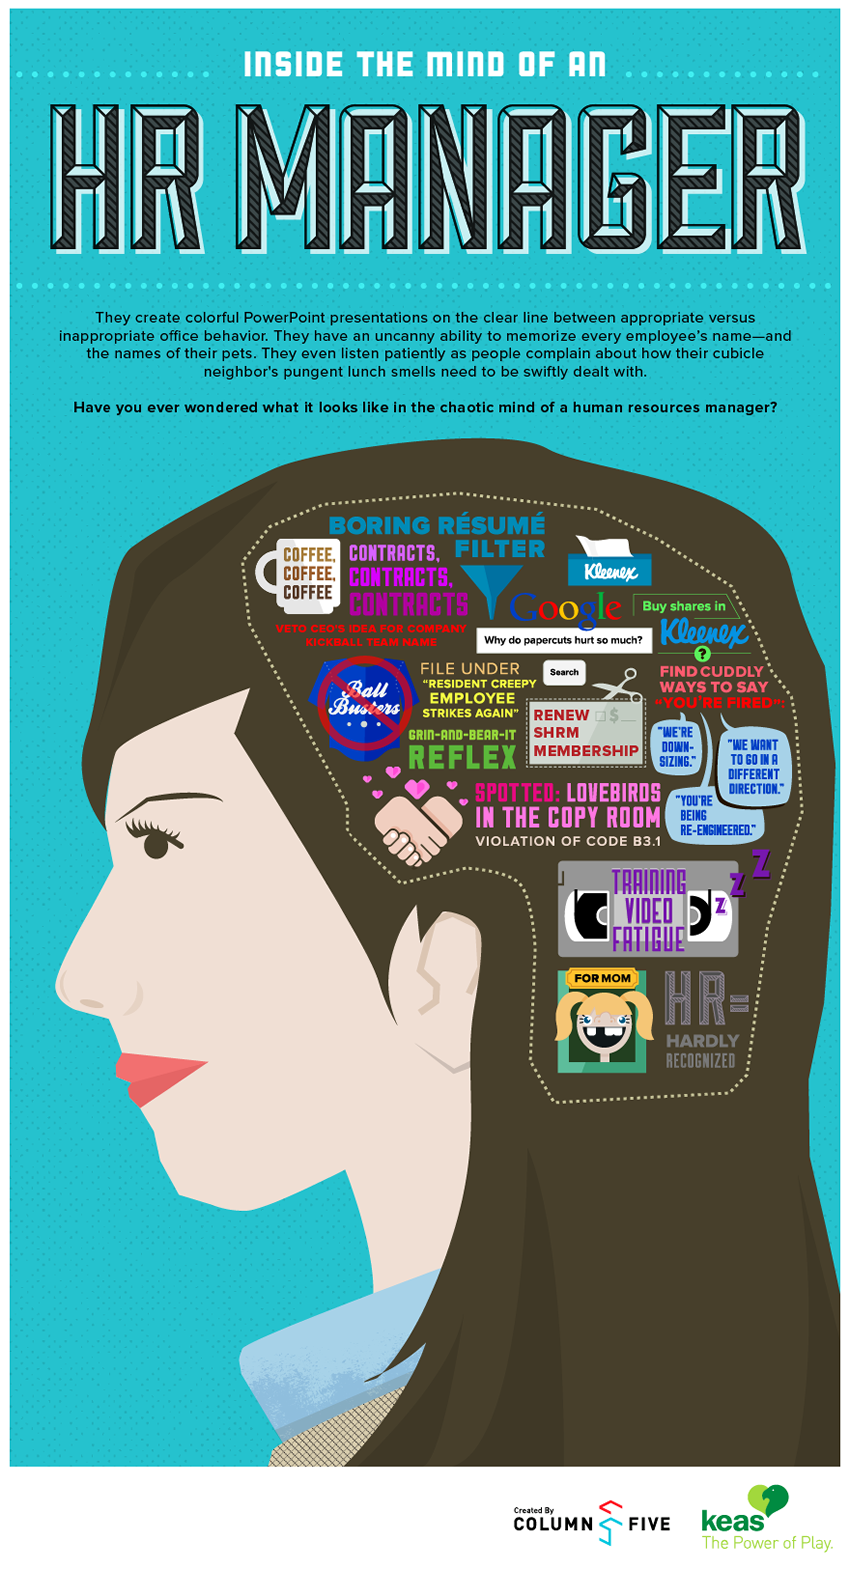 Technology Management Image: Inside The Mind Of An HR Manager